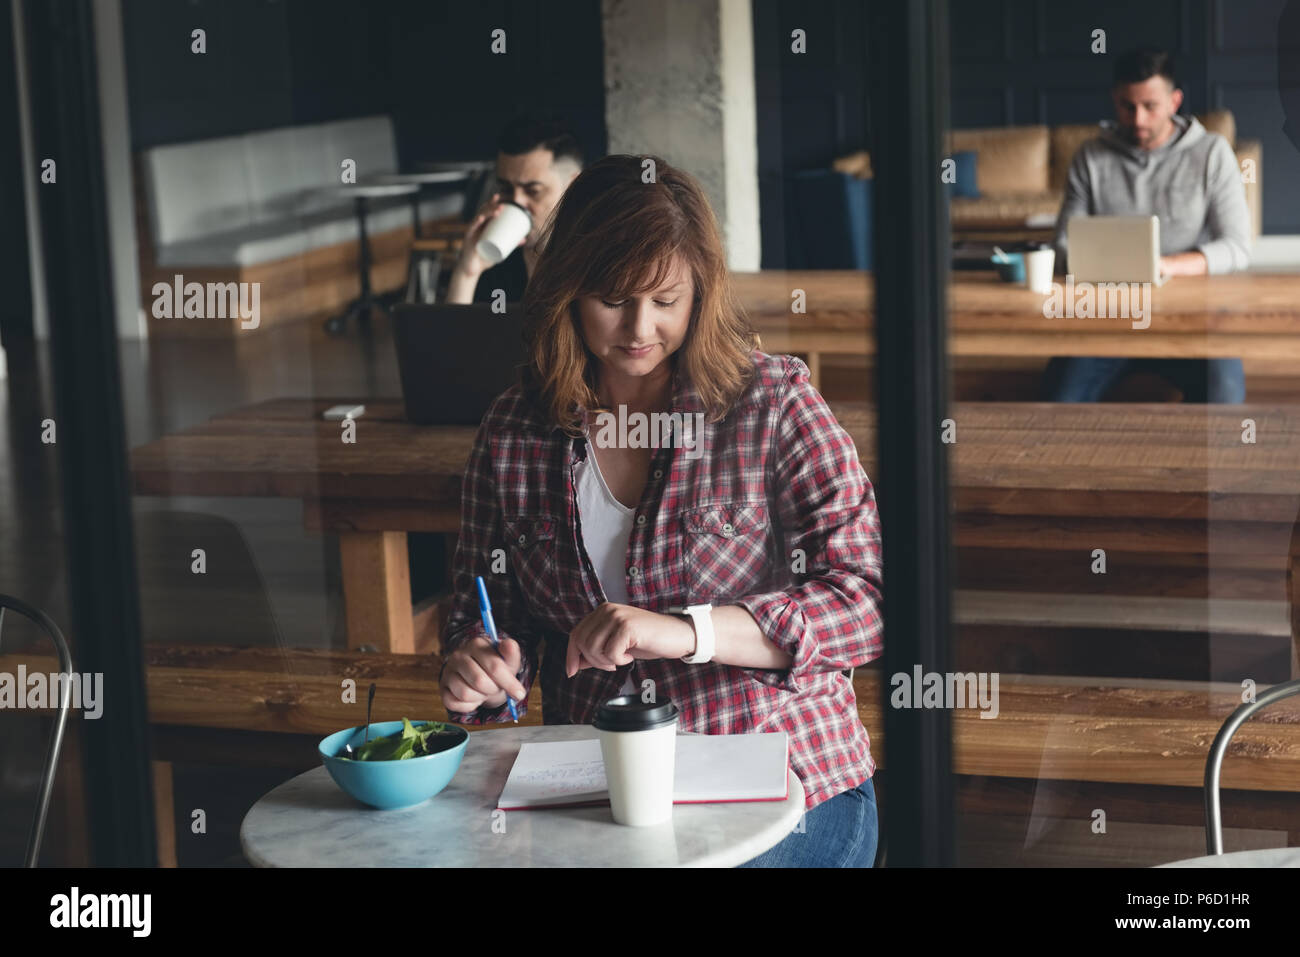 Businesswoman writing on a diary in cafeteria - Stock Image